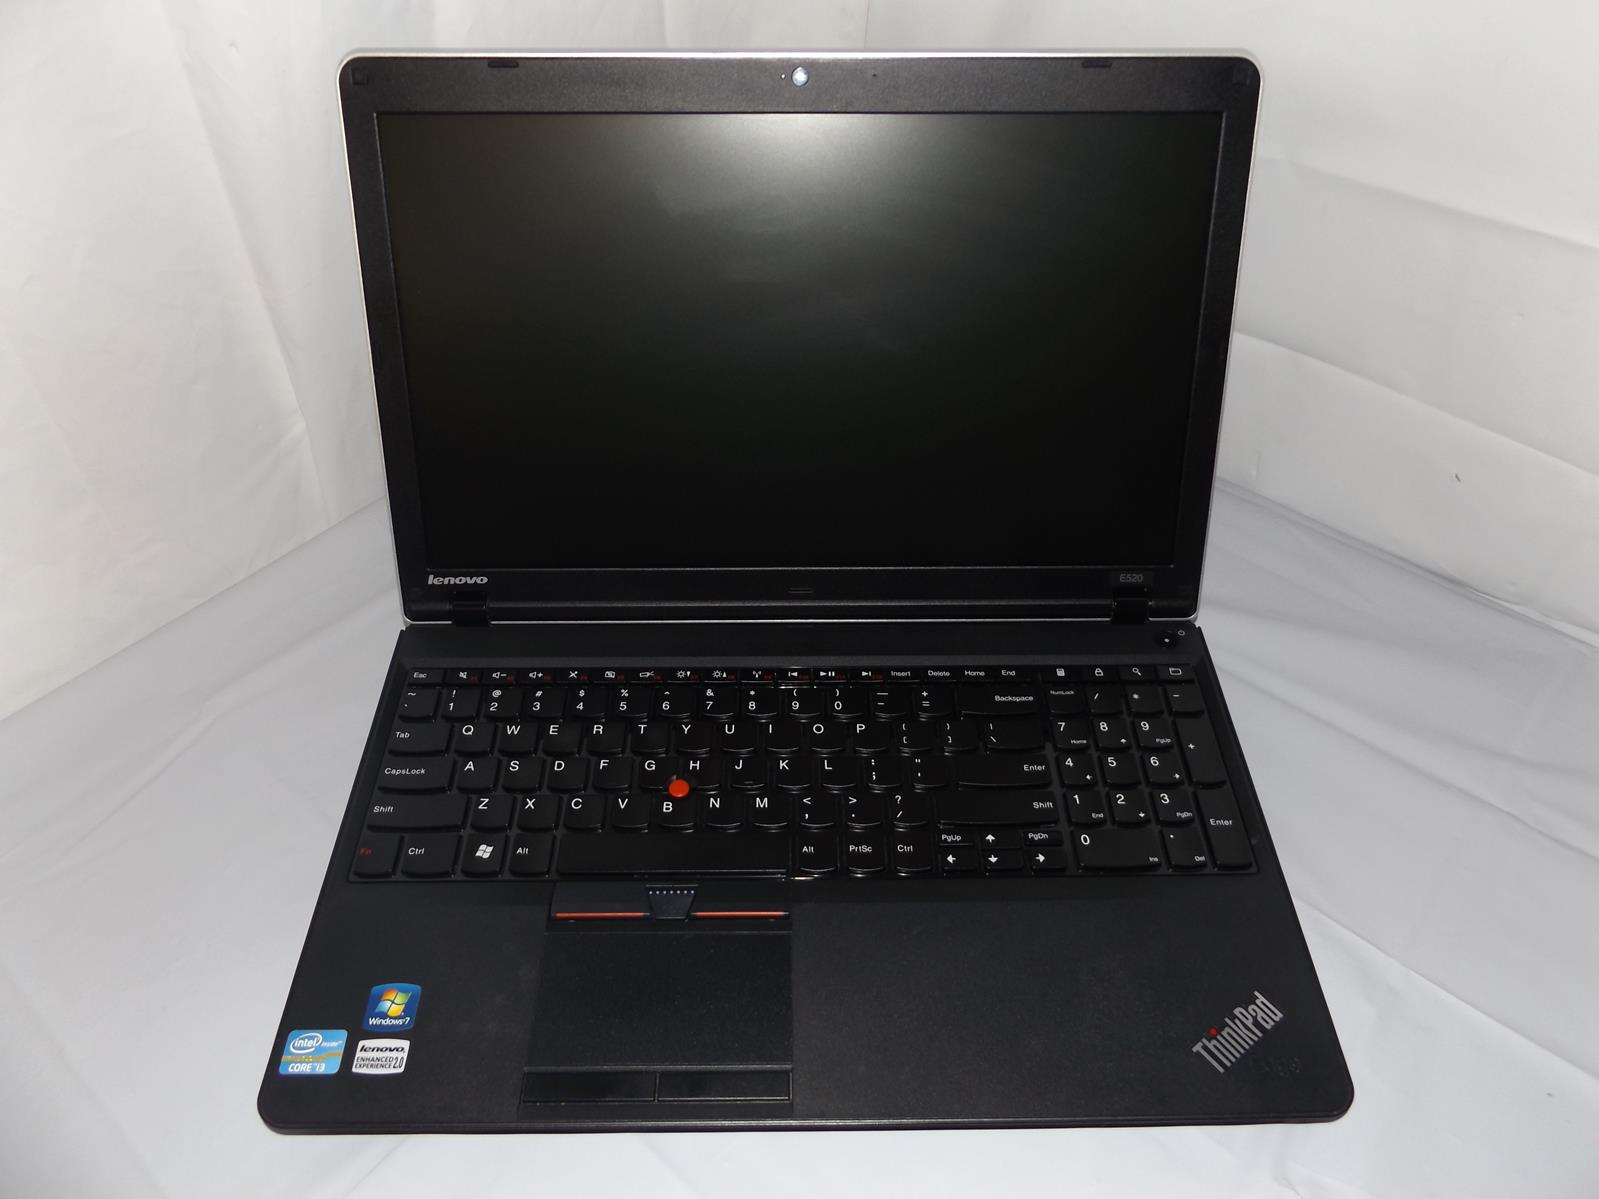 lenovo adu thinkpad edge e laptop i m ghz gb price 134 98